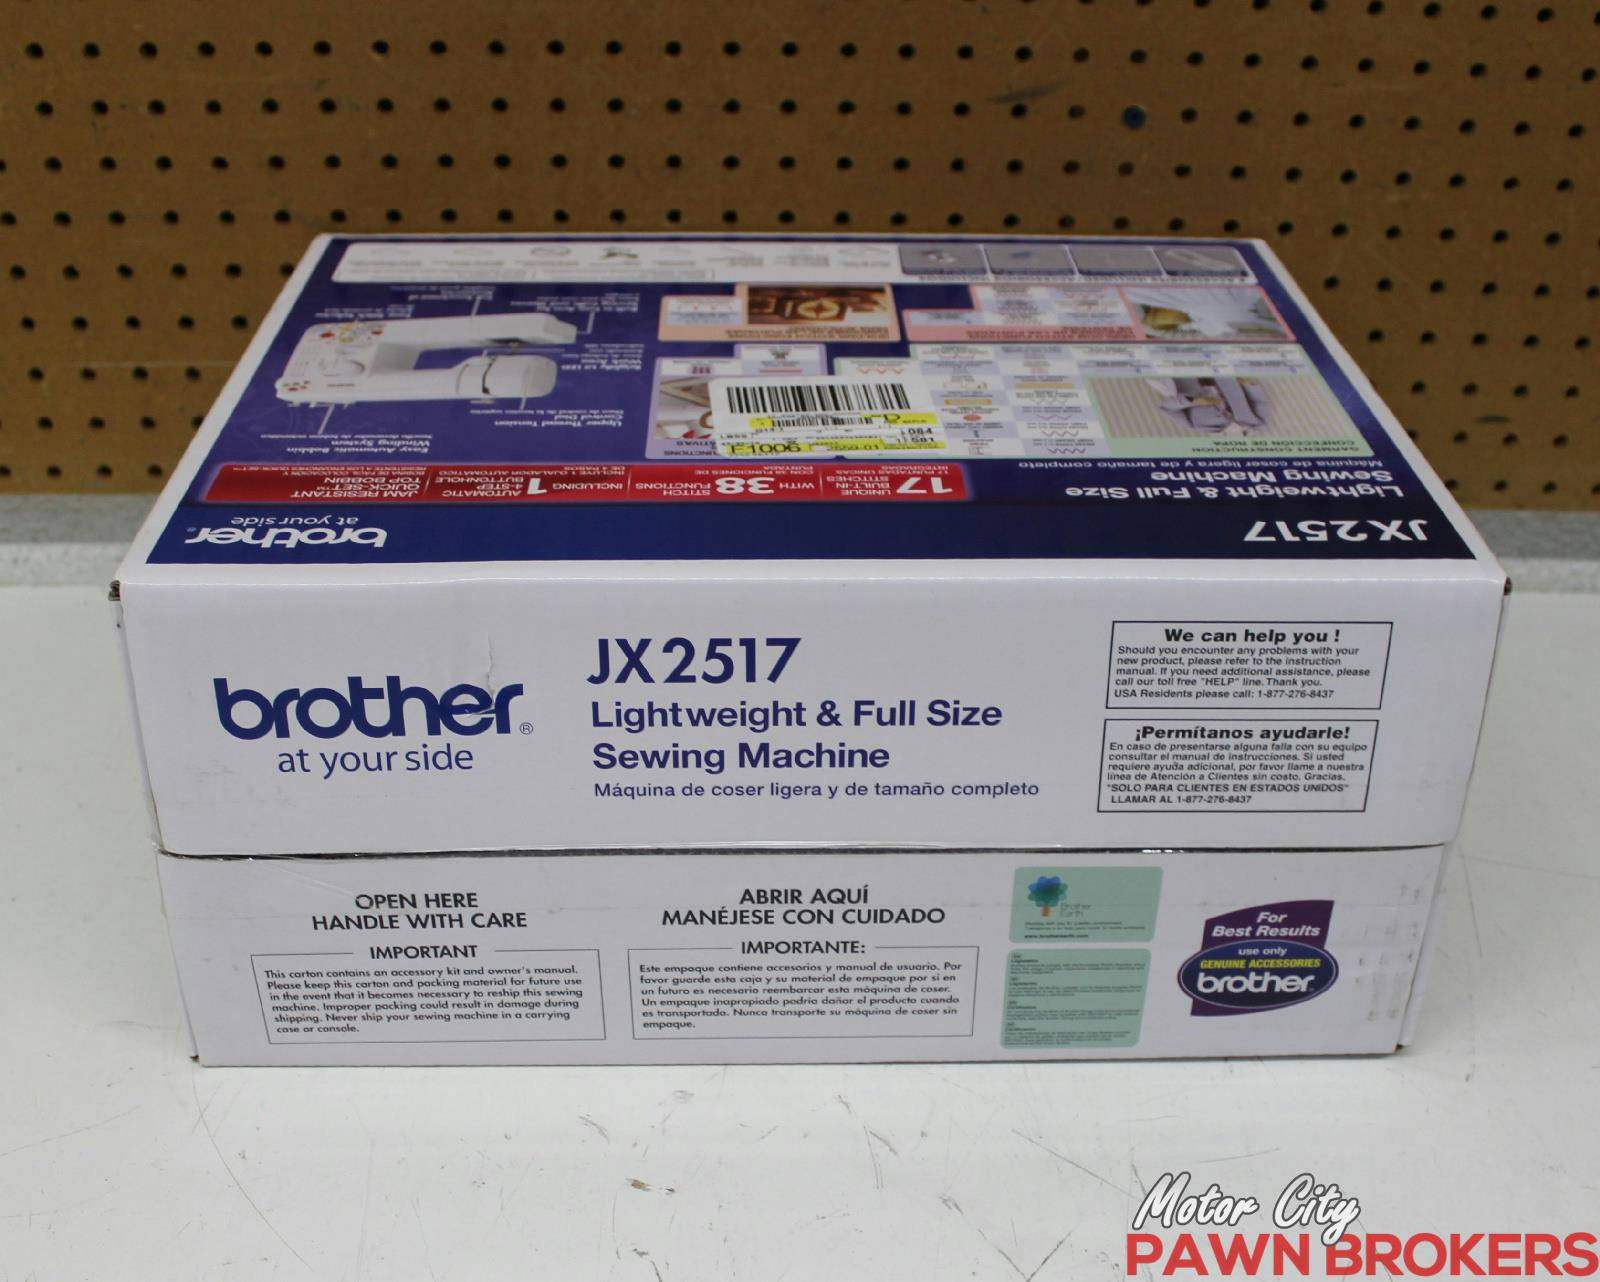 jx2517 lightweight and size sewing machine